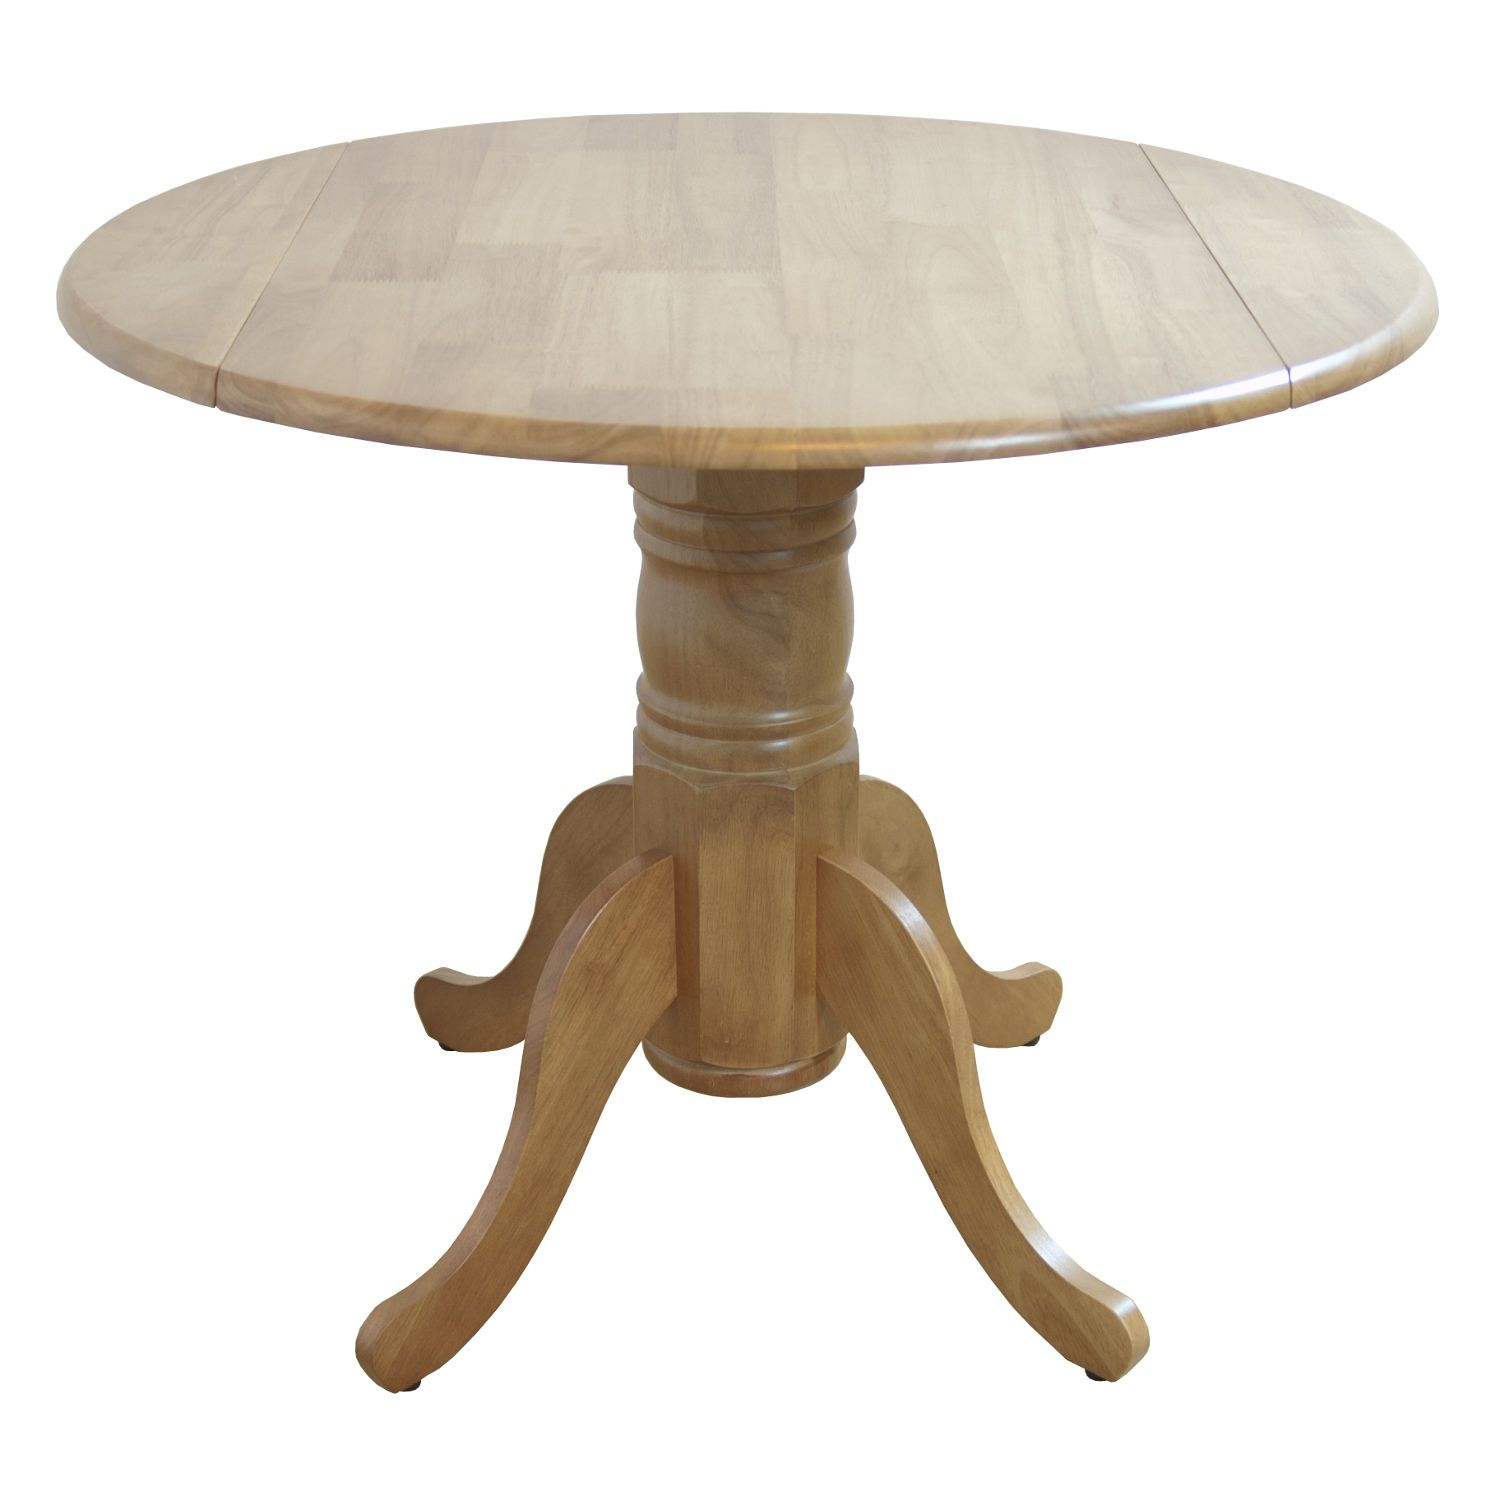 Drop Leaf Tables For Small Spaces Dining Table Country Dining Tables Unique Dining Room Table